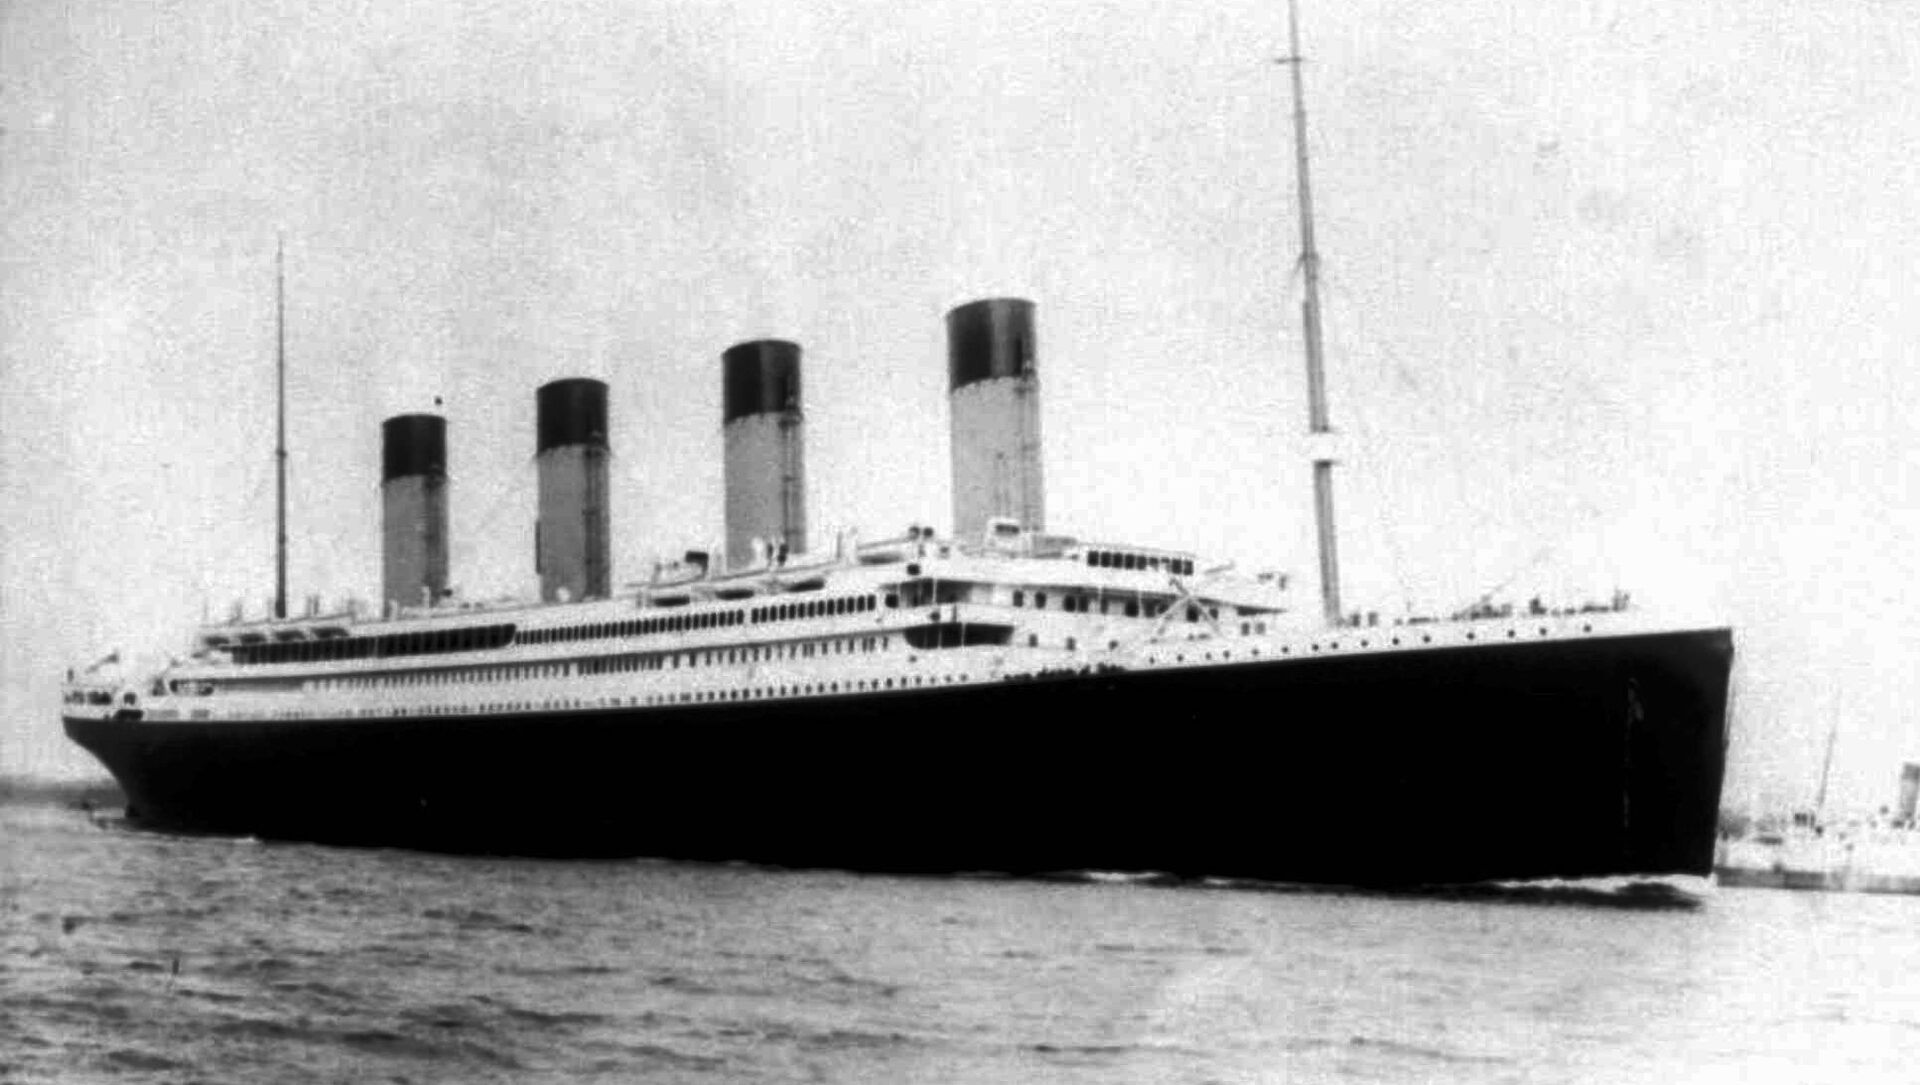 Undated file photo of the doomed S.S. Titanic. Salvage operators hope to raise a large chunk of the British liner, which sunk on its maiden voyage 84 years ago, when it struck an iceberg in the north Atlantic. More than 1,500 people died in the icy waters of the Atlantic when the Titanic sank.  - Sputnik International, 1920, 05.08.2021